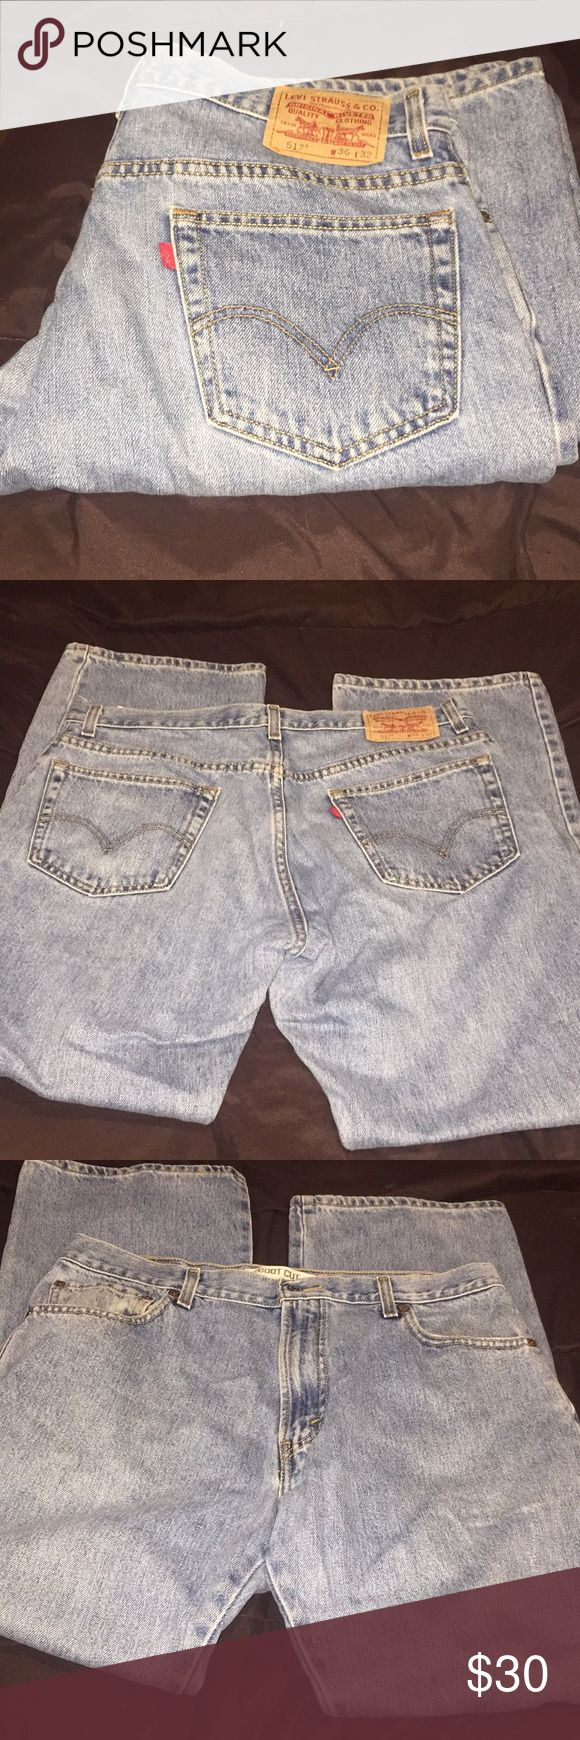 Men's Levi jeans-Vintage  517 Vintage, lighter wash Levi's jeans for men. They are size 36x32, bootcut style and 517.    ❤️Be sure to check out my other listings! I bundle and have weekly Flash Sales that you won't want to miss! 2+ bundles items = extra discounts! Don't forget to follow me! New stuff added regularly! Levi's Jeans Bootcut